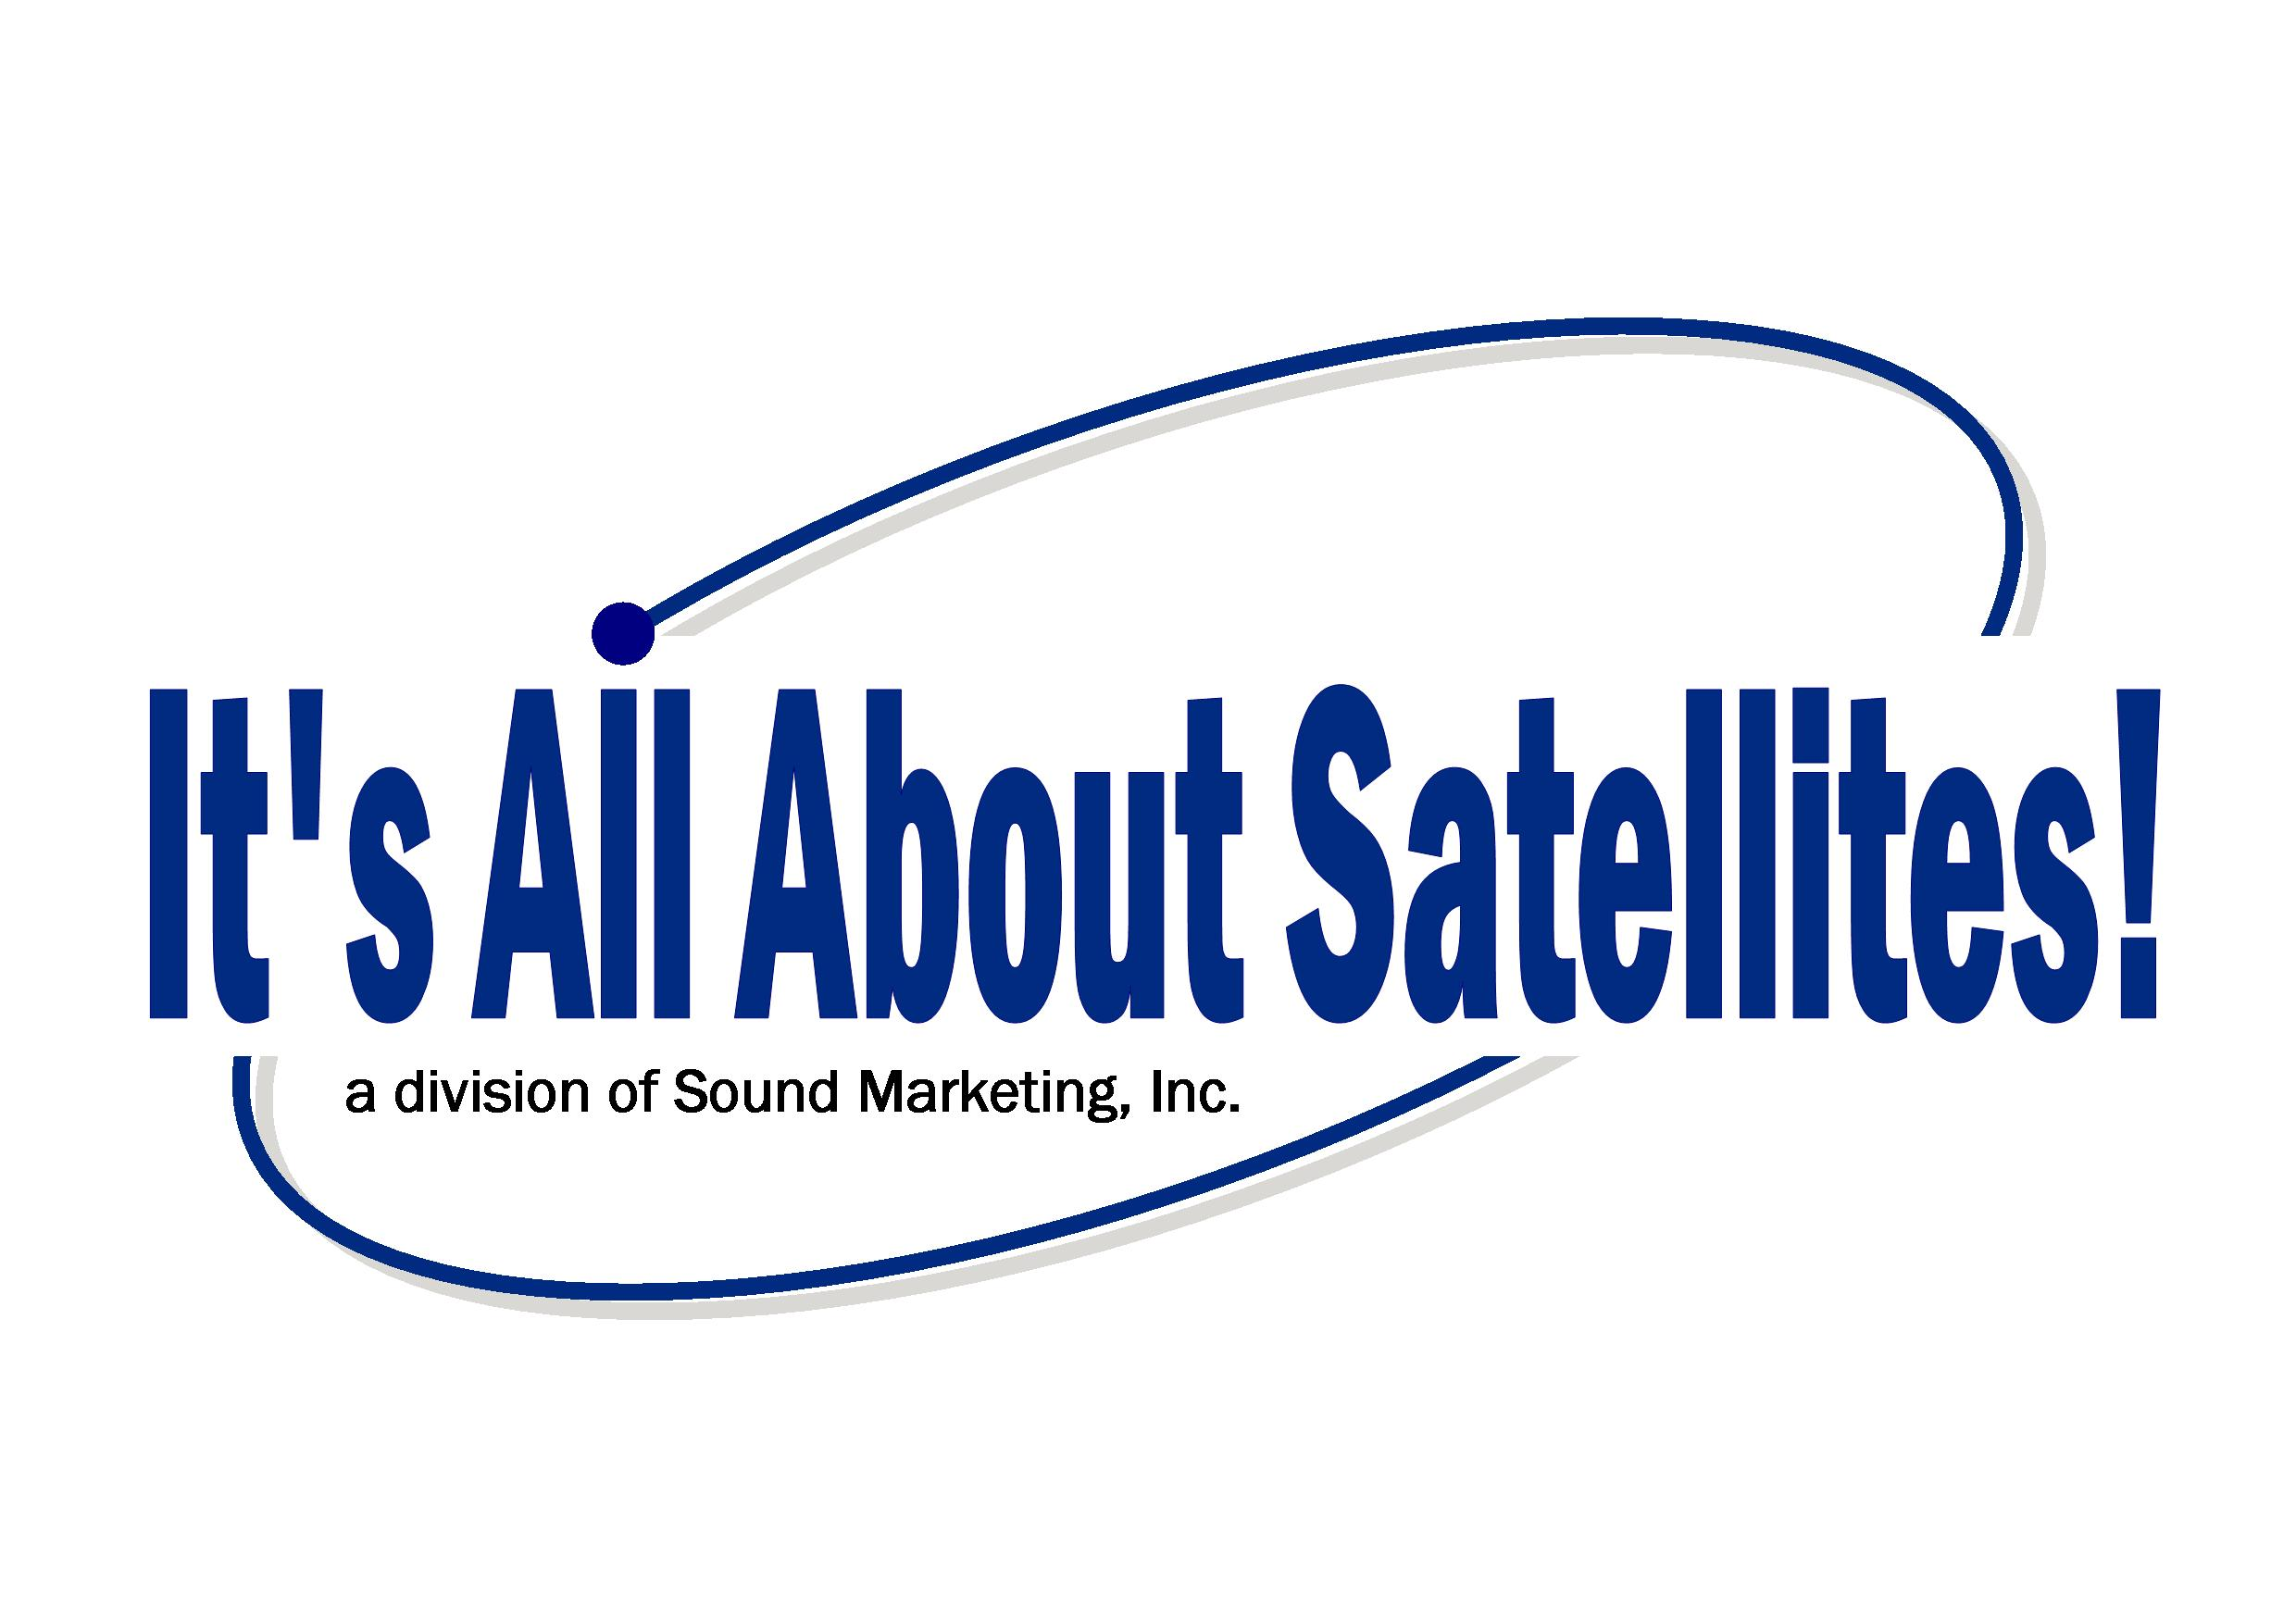 Its All About Satellites | TV for Hotels, Assisted Living, DIRECTV for Bars, Restaurants & Business